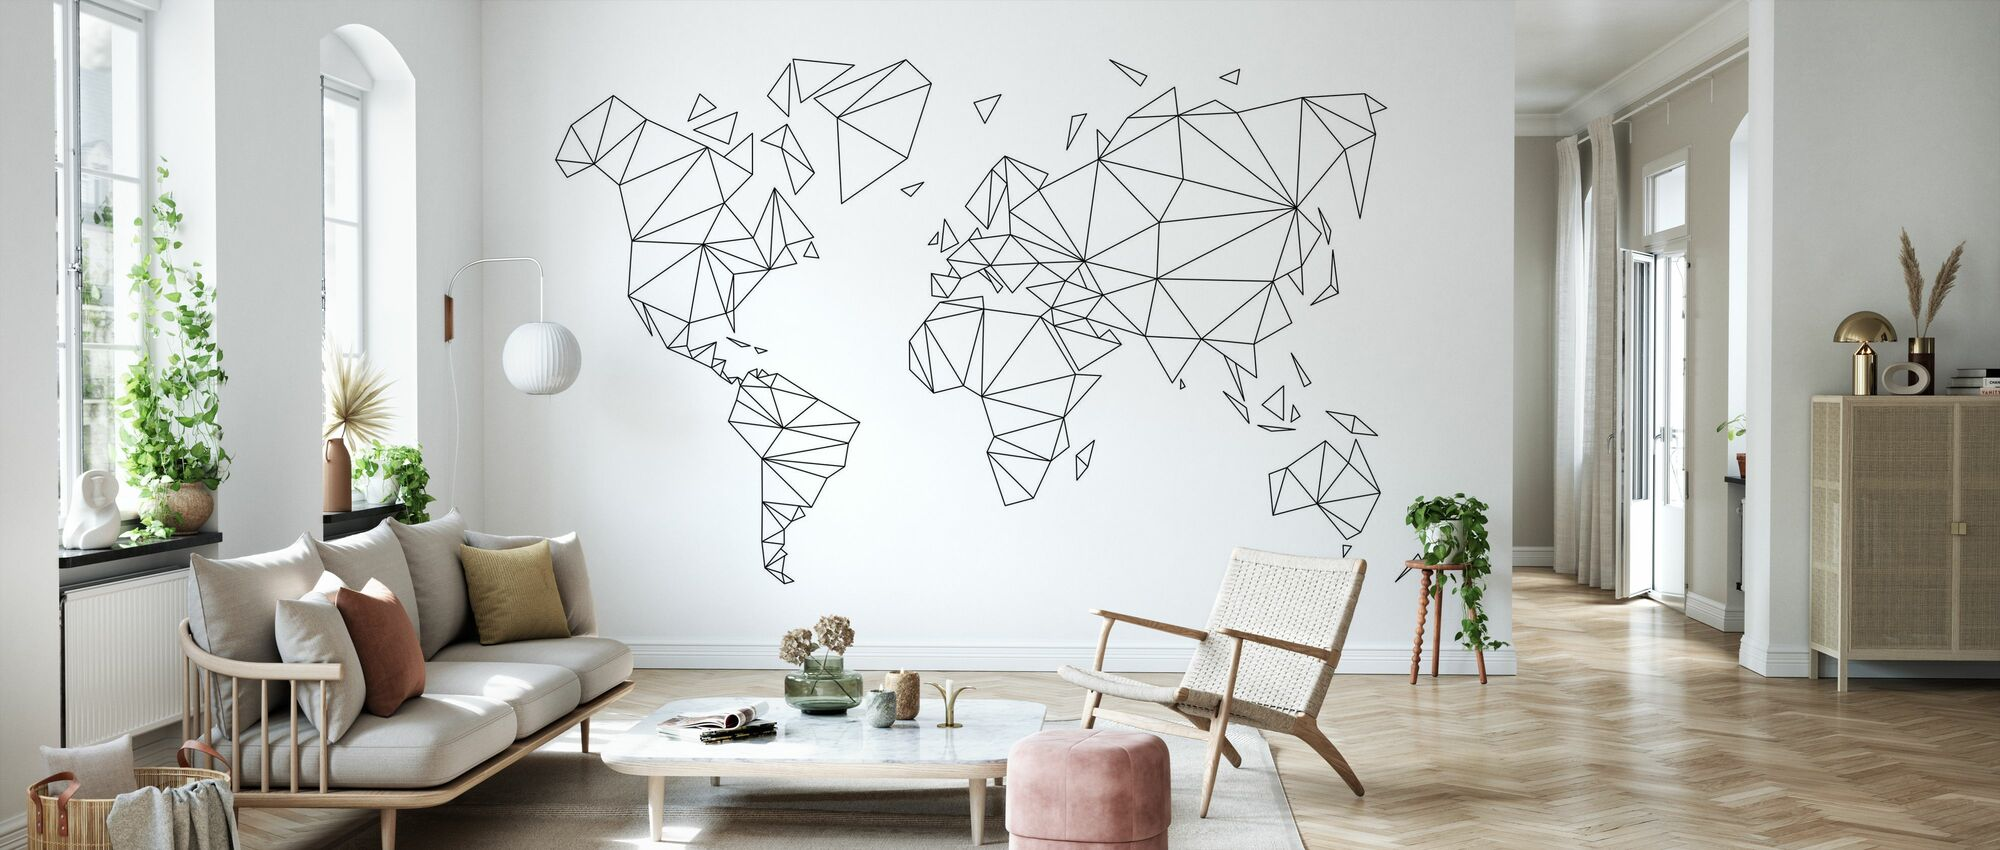 Geometric World Map Black - Wallpaper - Living Room